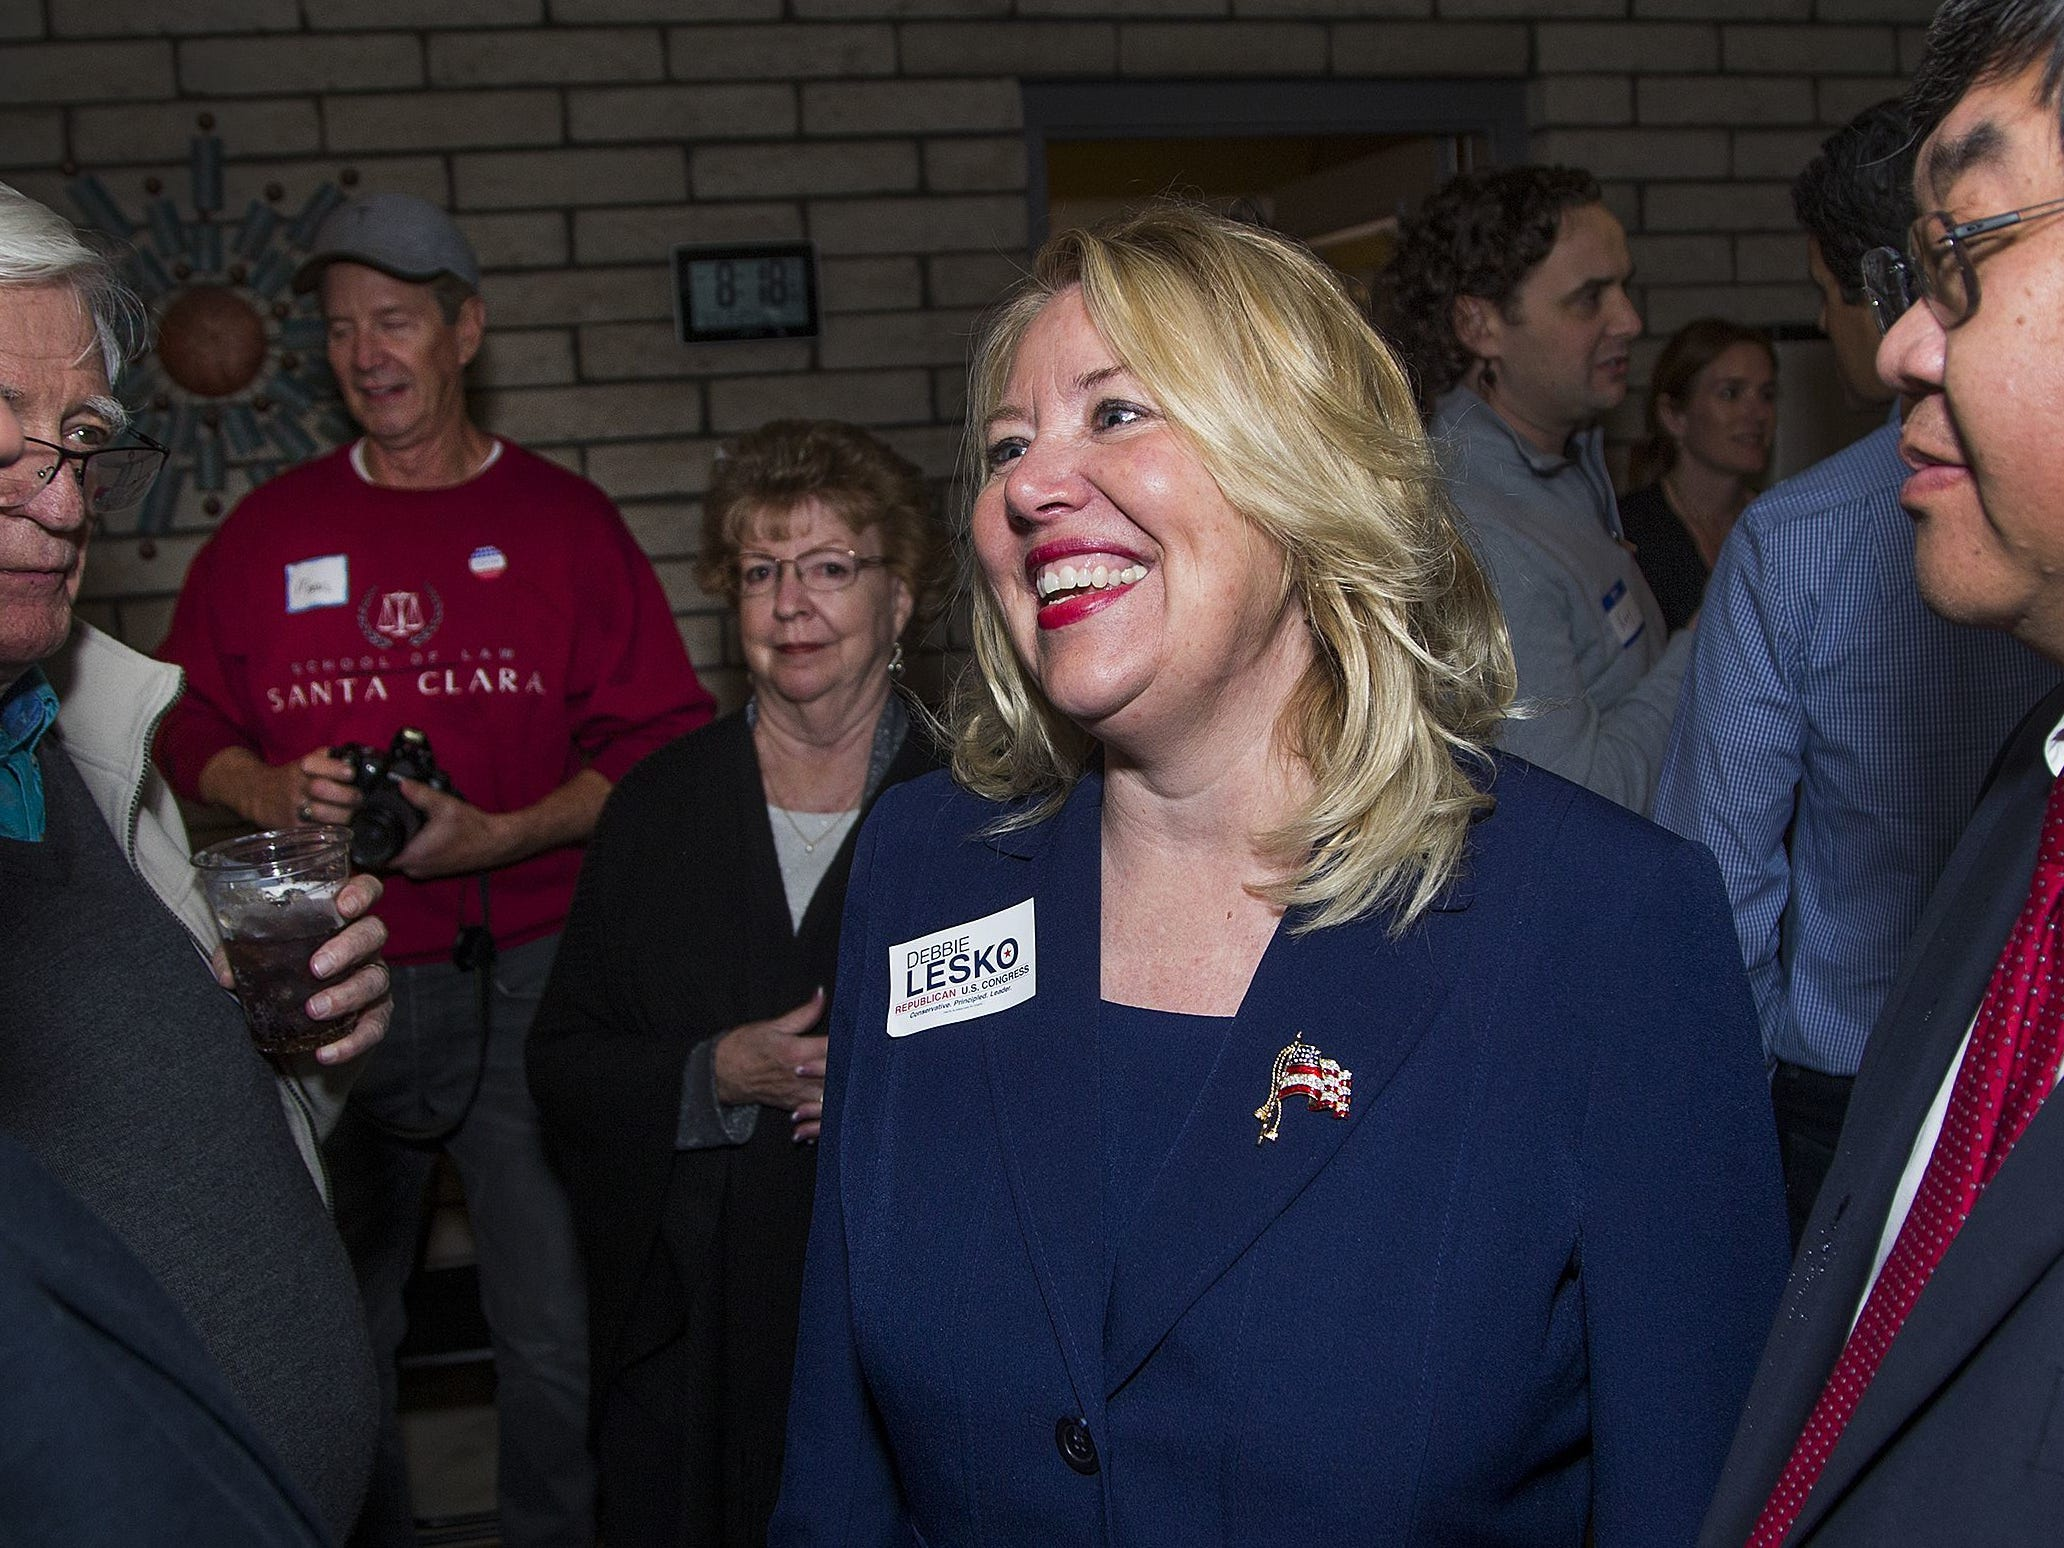 Rep. Debbie Lesko Won re-election in 2018. Served one term in the U.S. House of Representatives.